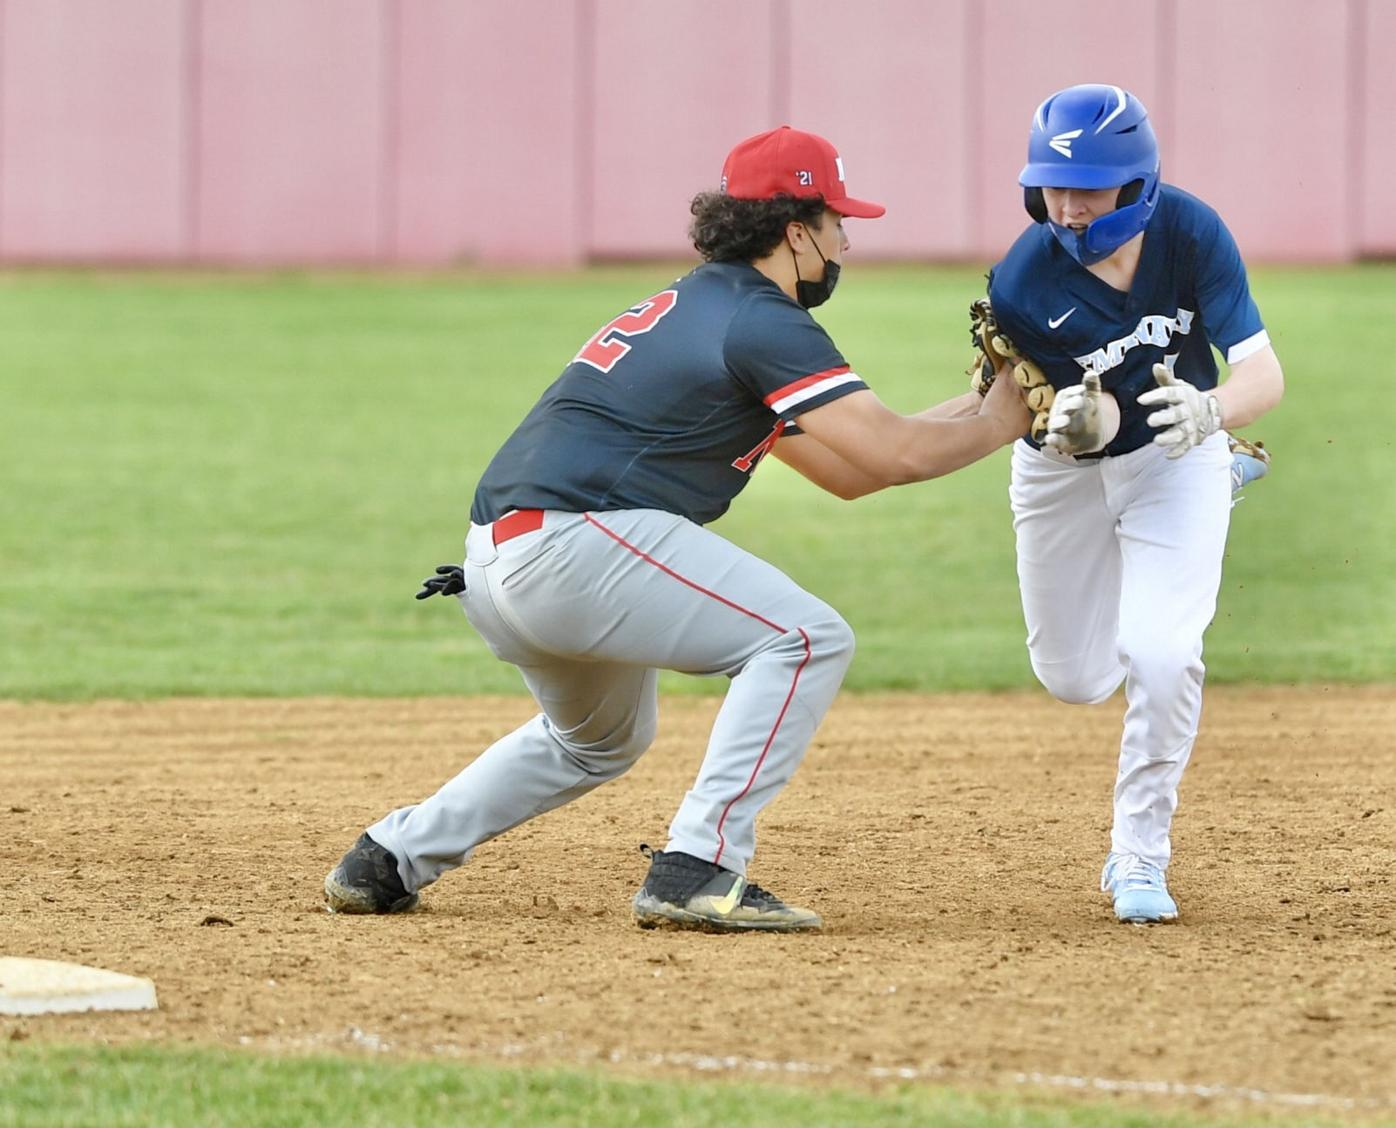 Cougars stay perfect, edge Emmaus